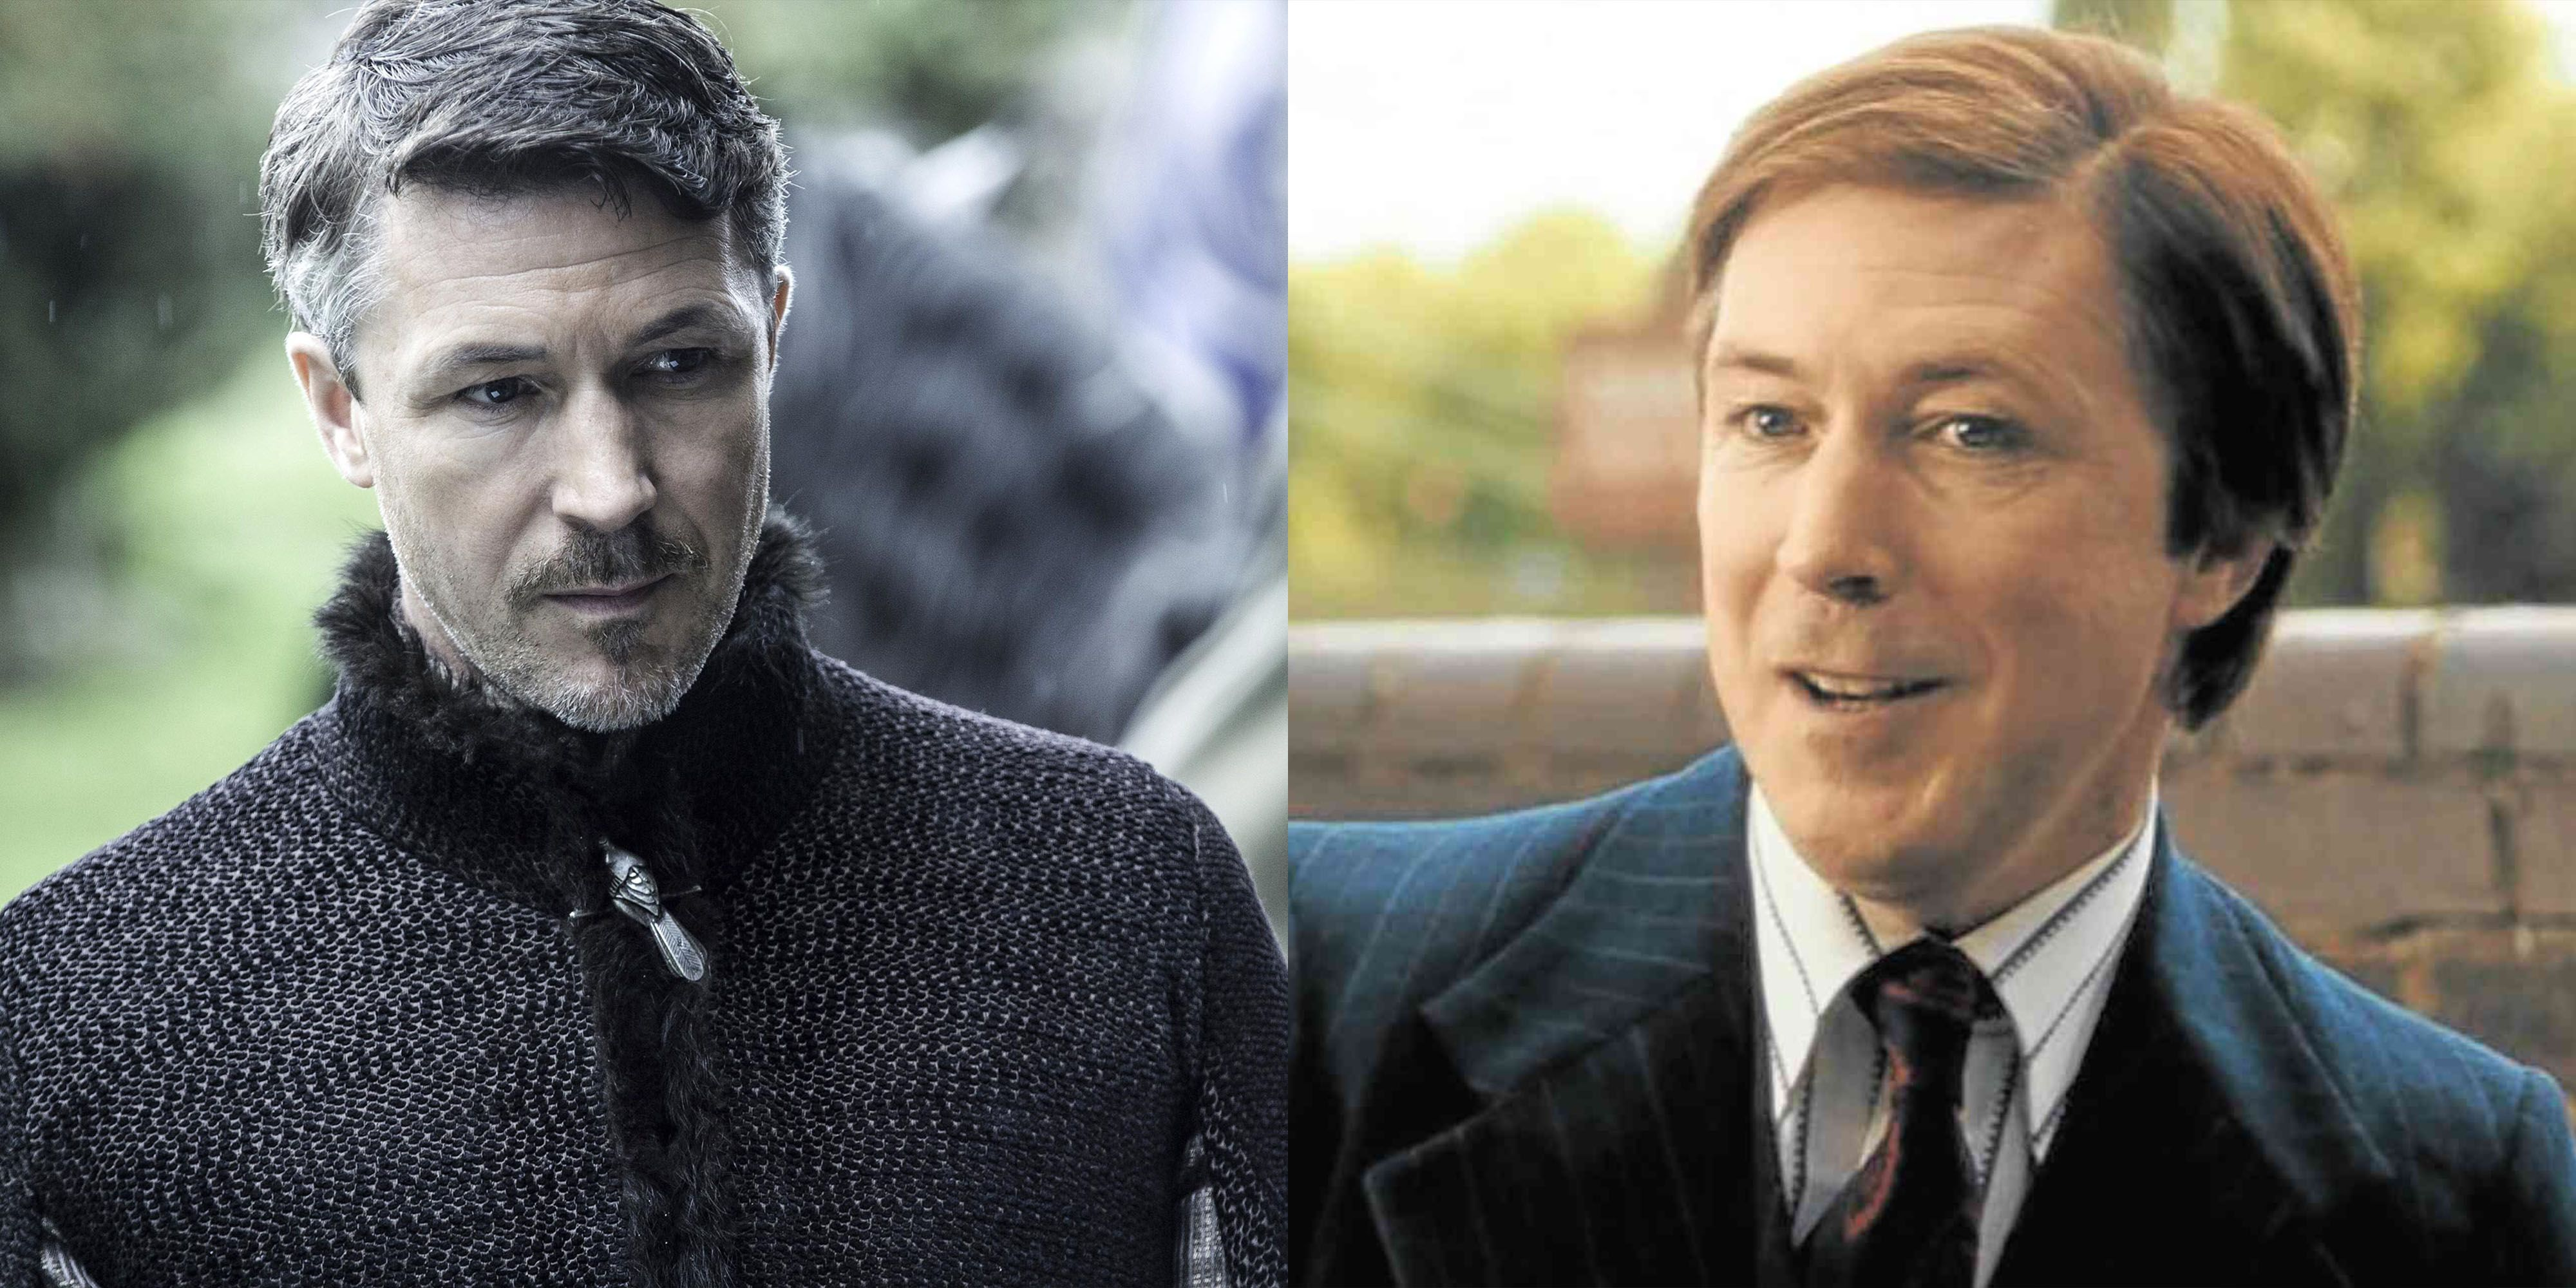 Aiden Gillen Not long after Littlefinger got what was coming to him at the hands of the Stark sisters, Gillen appeared (almost unrecognizably) as John Reid in Bohemian Rhapsody .